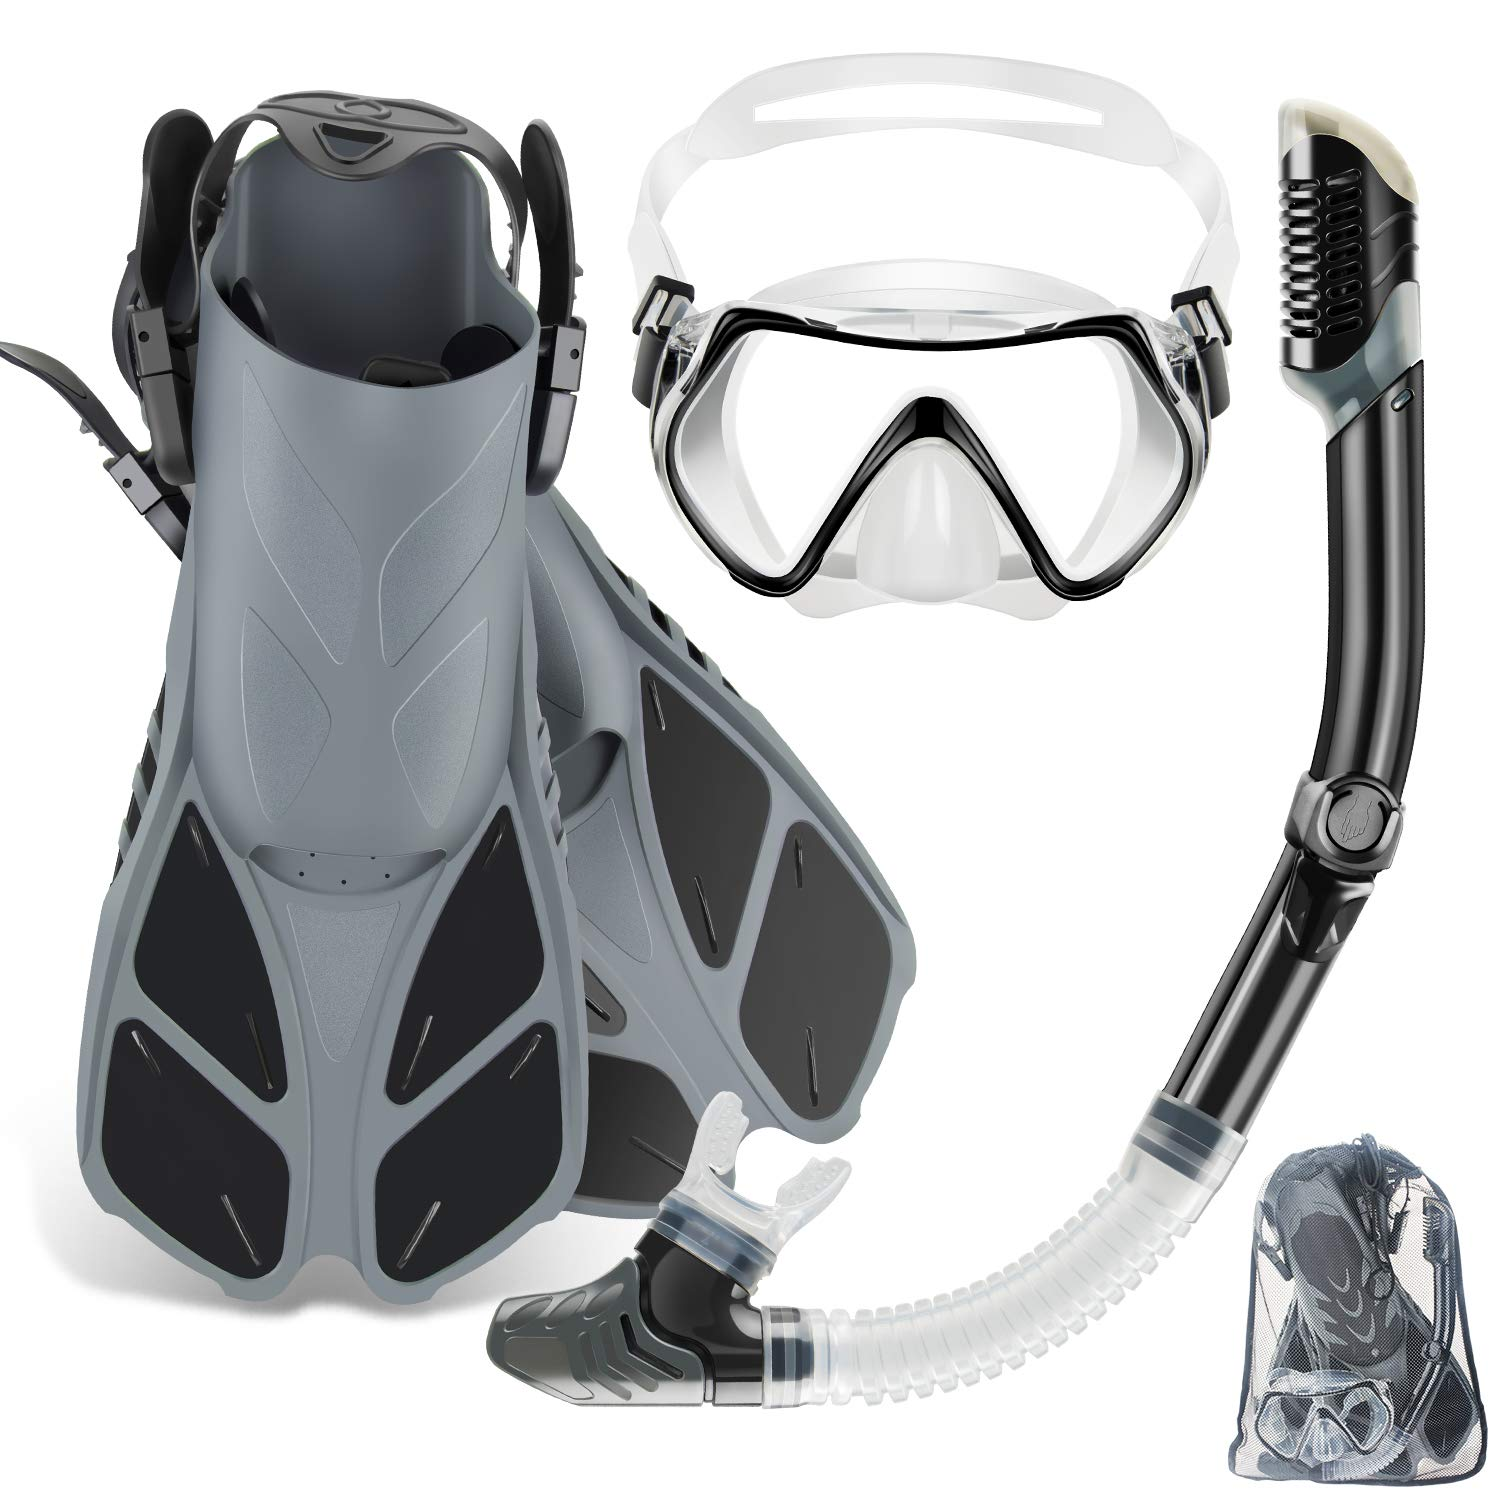 ZEEPORTE Mask Fin Snorkel Set with Adult Snorkeling Gear, Panoramic View Diving Mask, Trek Fin, Dry Top Snorkel +Travel Bags, Snorkel for Lap Swimming (ML/XL) (White, ML/XL) by ZEEPORTE